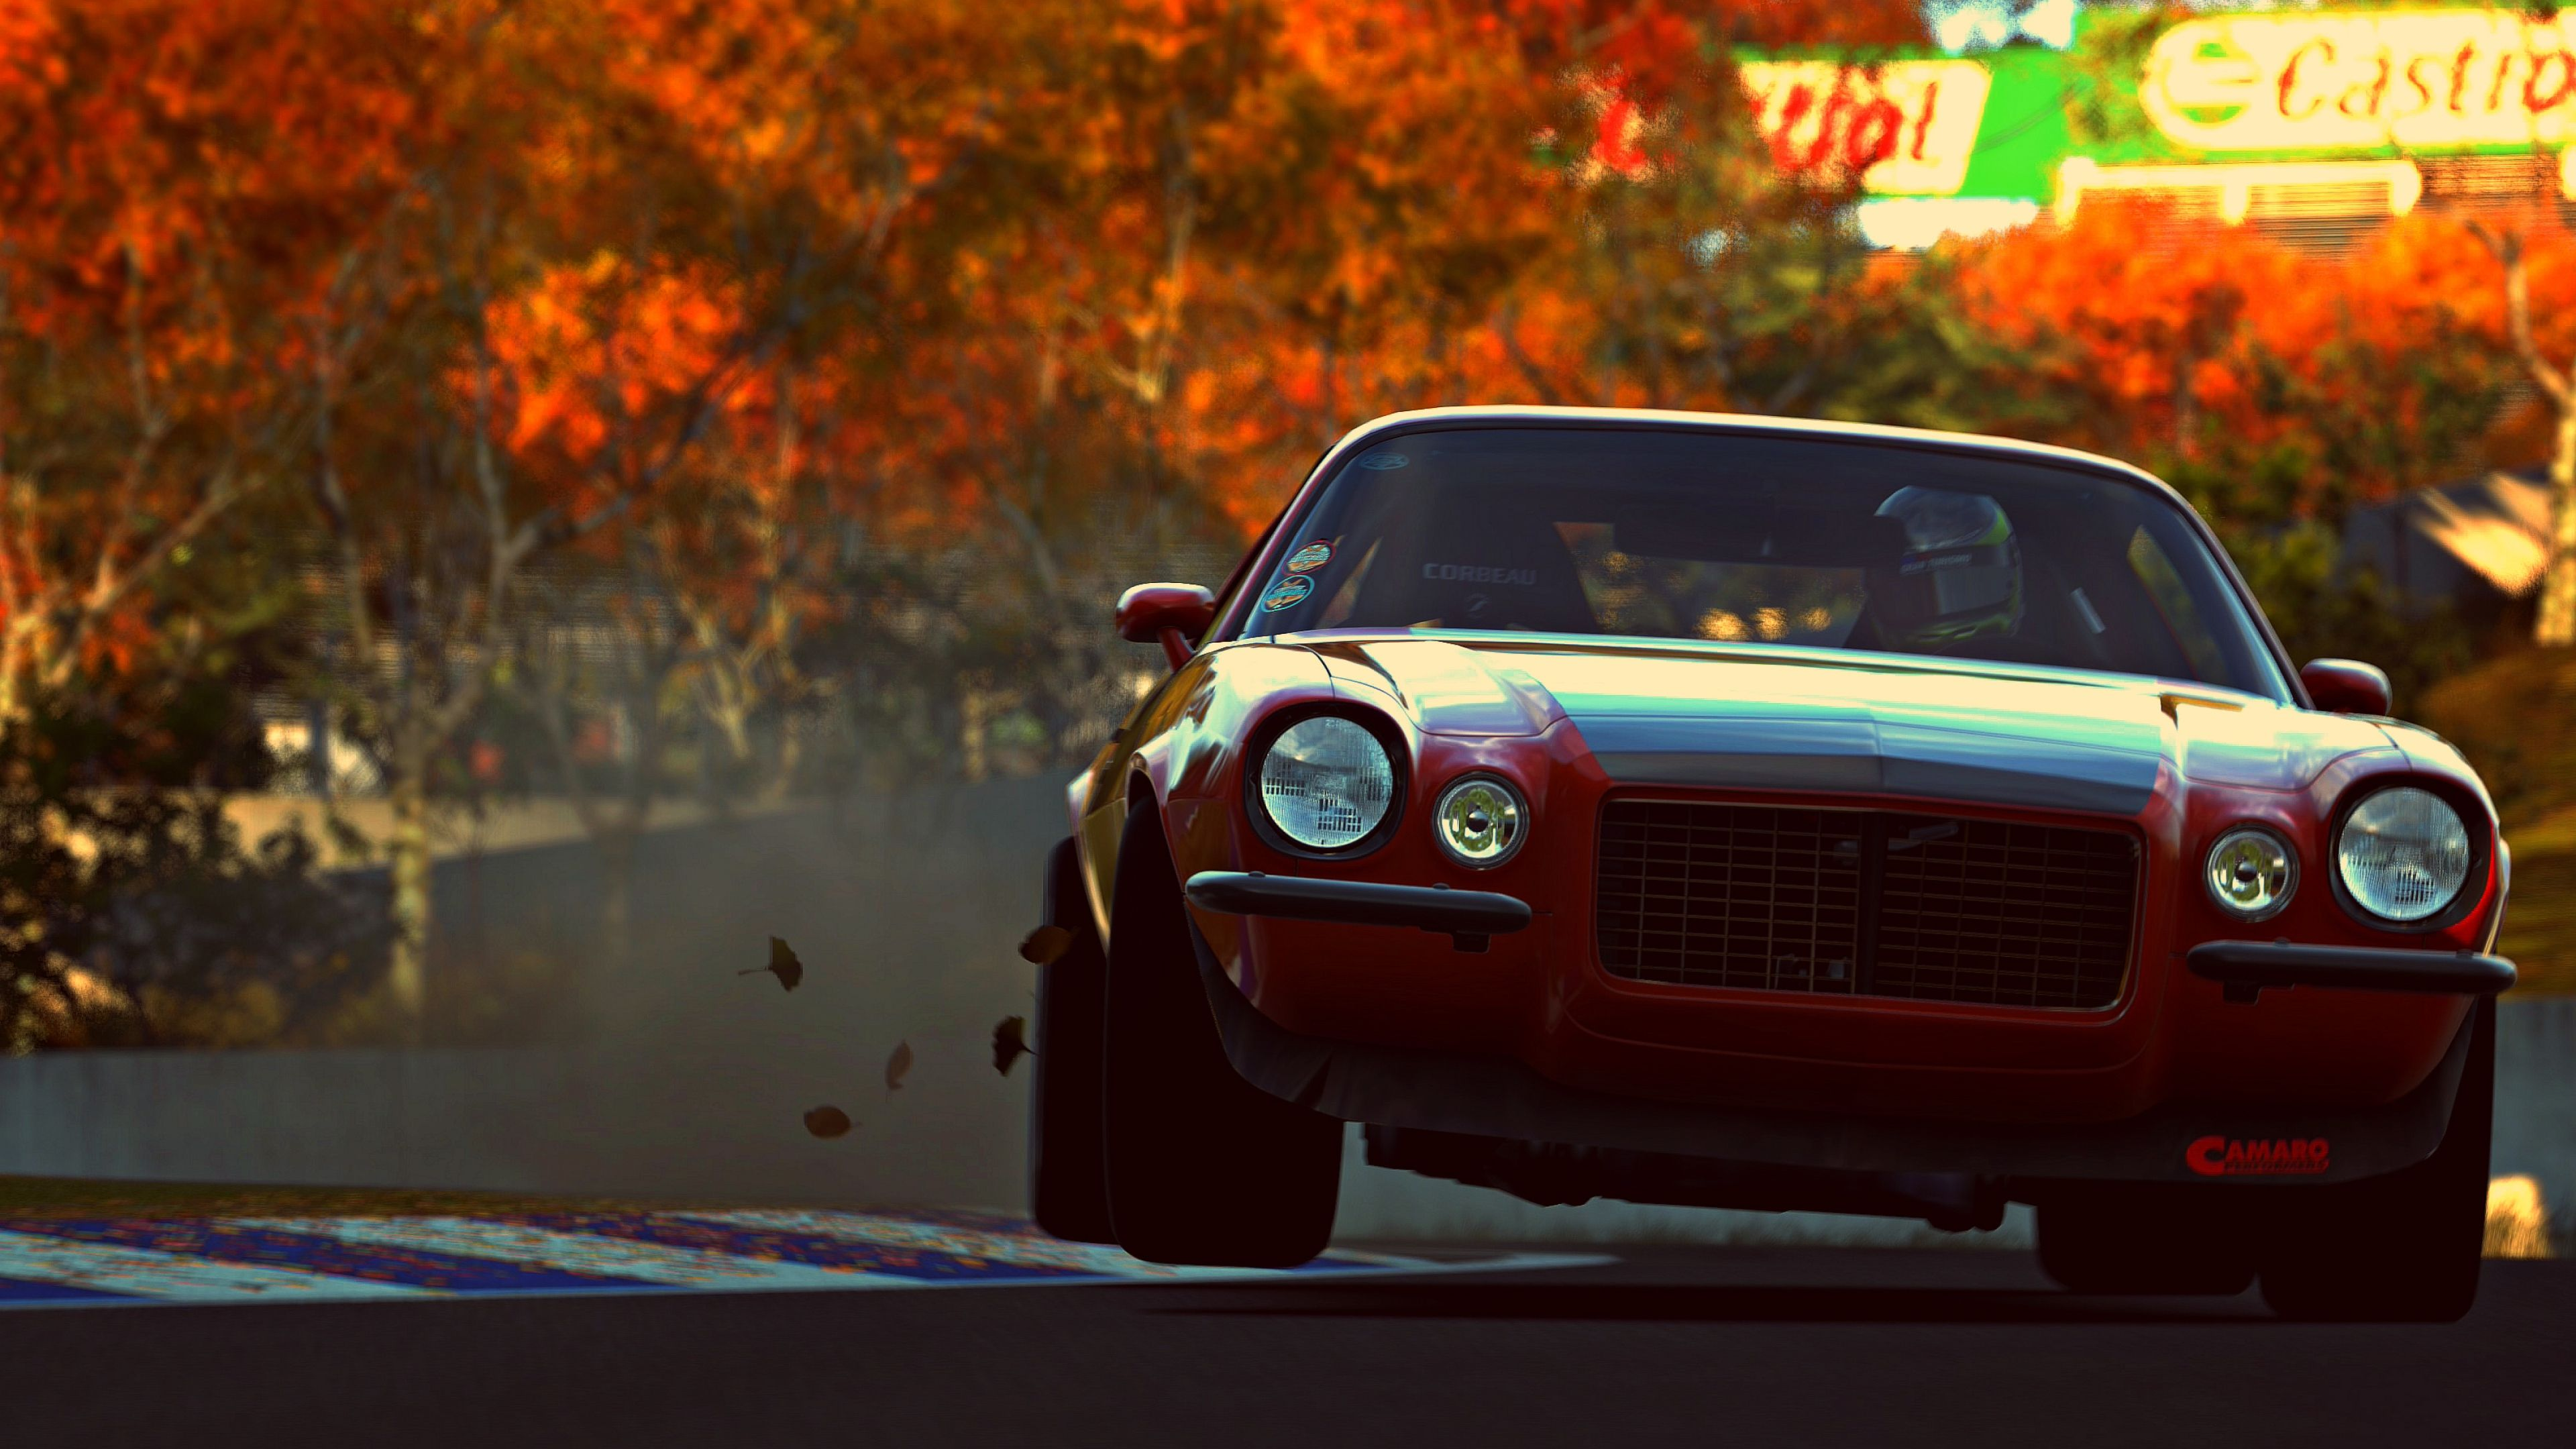 3840x2160 wallpaper camaro rs muscle car vehicle gran turismo 6